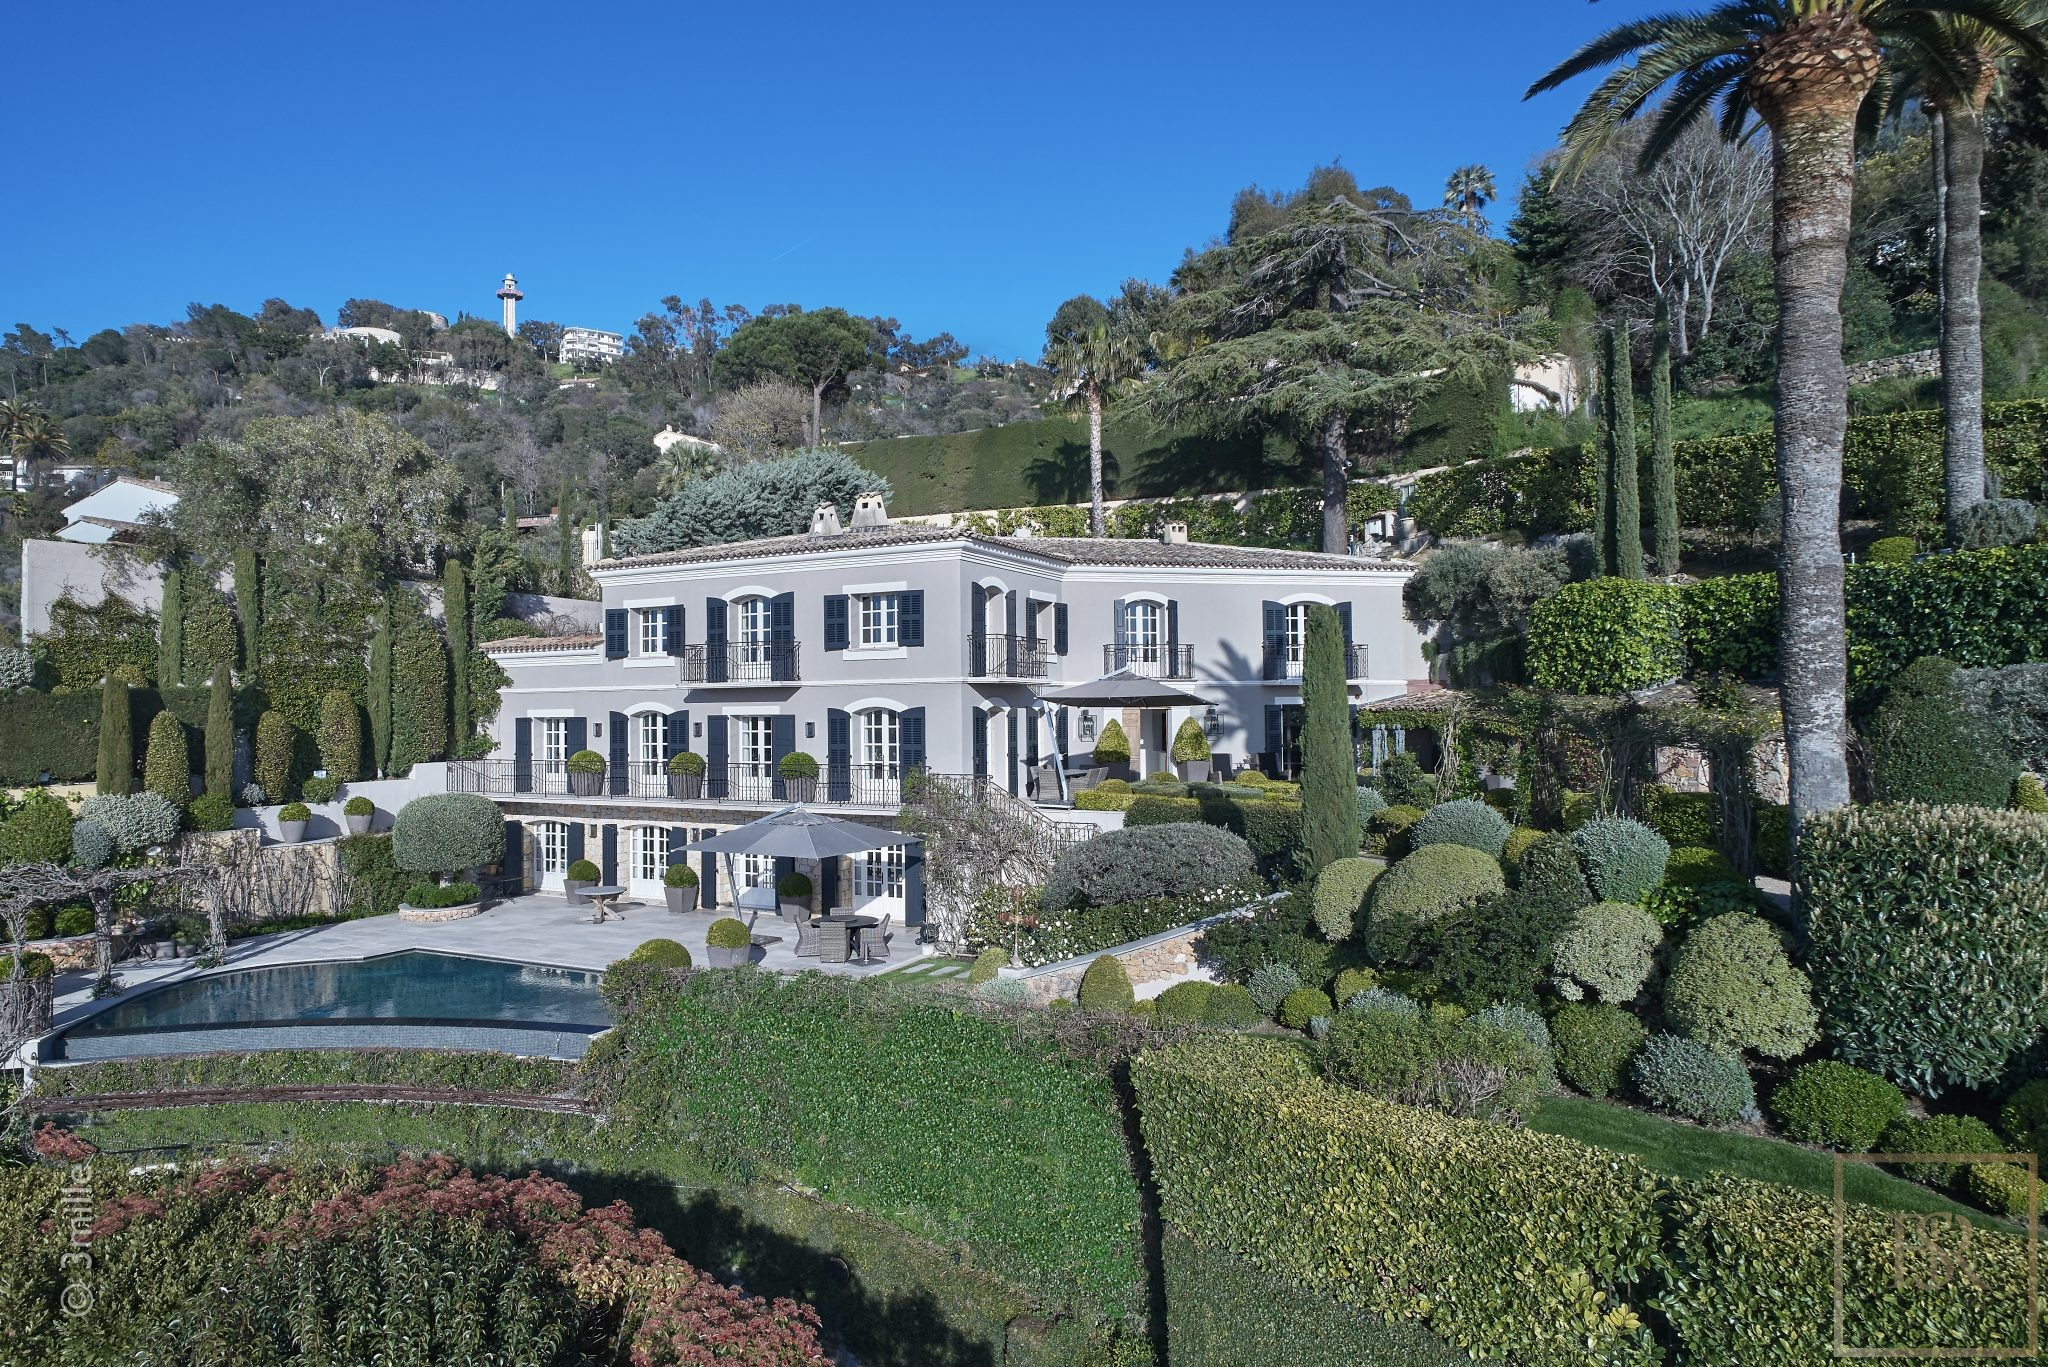 For super rich ultra luxury real estate properties homes, most expensive houses, buy unique penthouse apartment and ultimate villa in Cannes France for sale French riviera